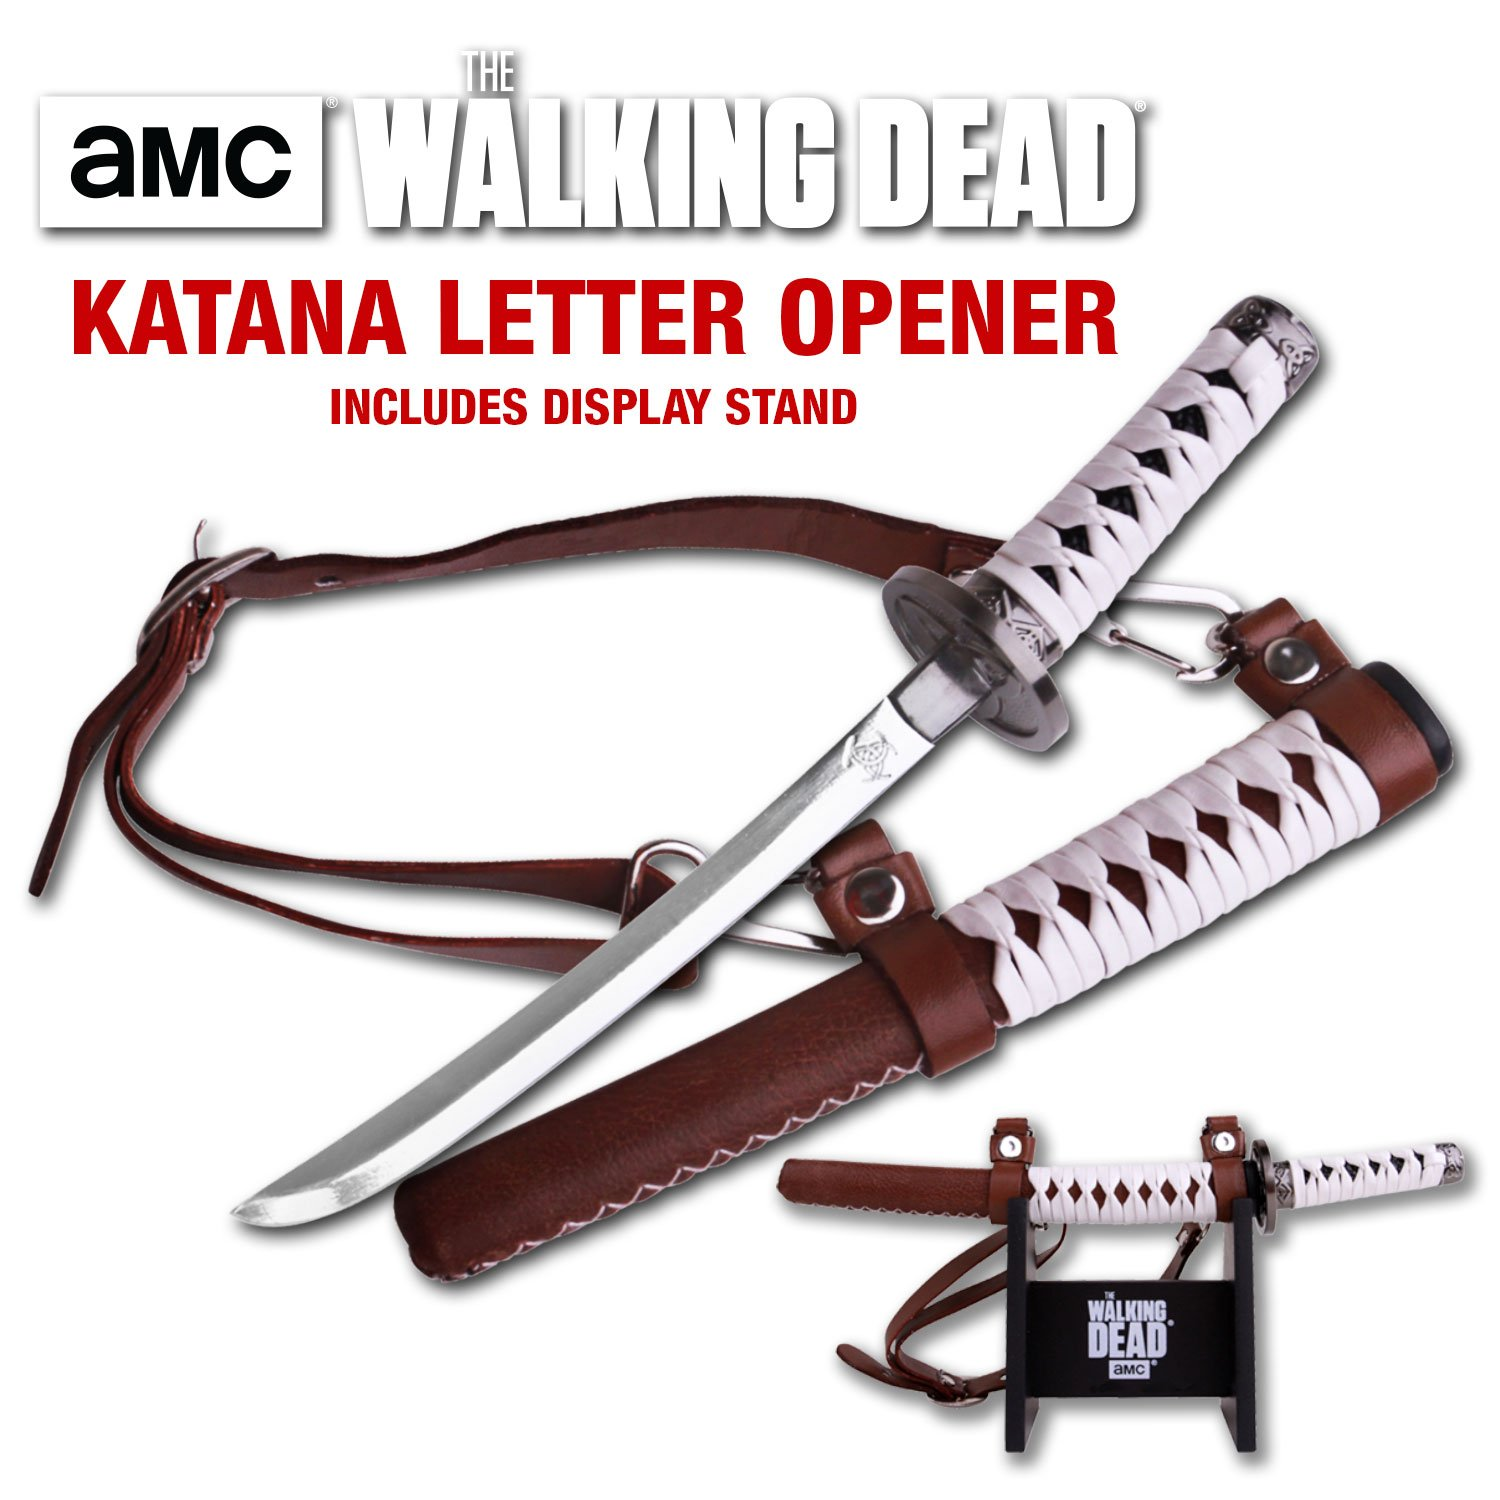 Walking Dead Official Katana Letter Opener with Display Stand